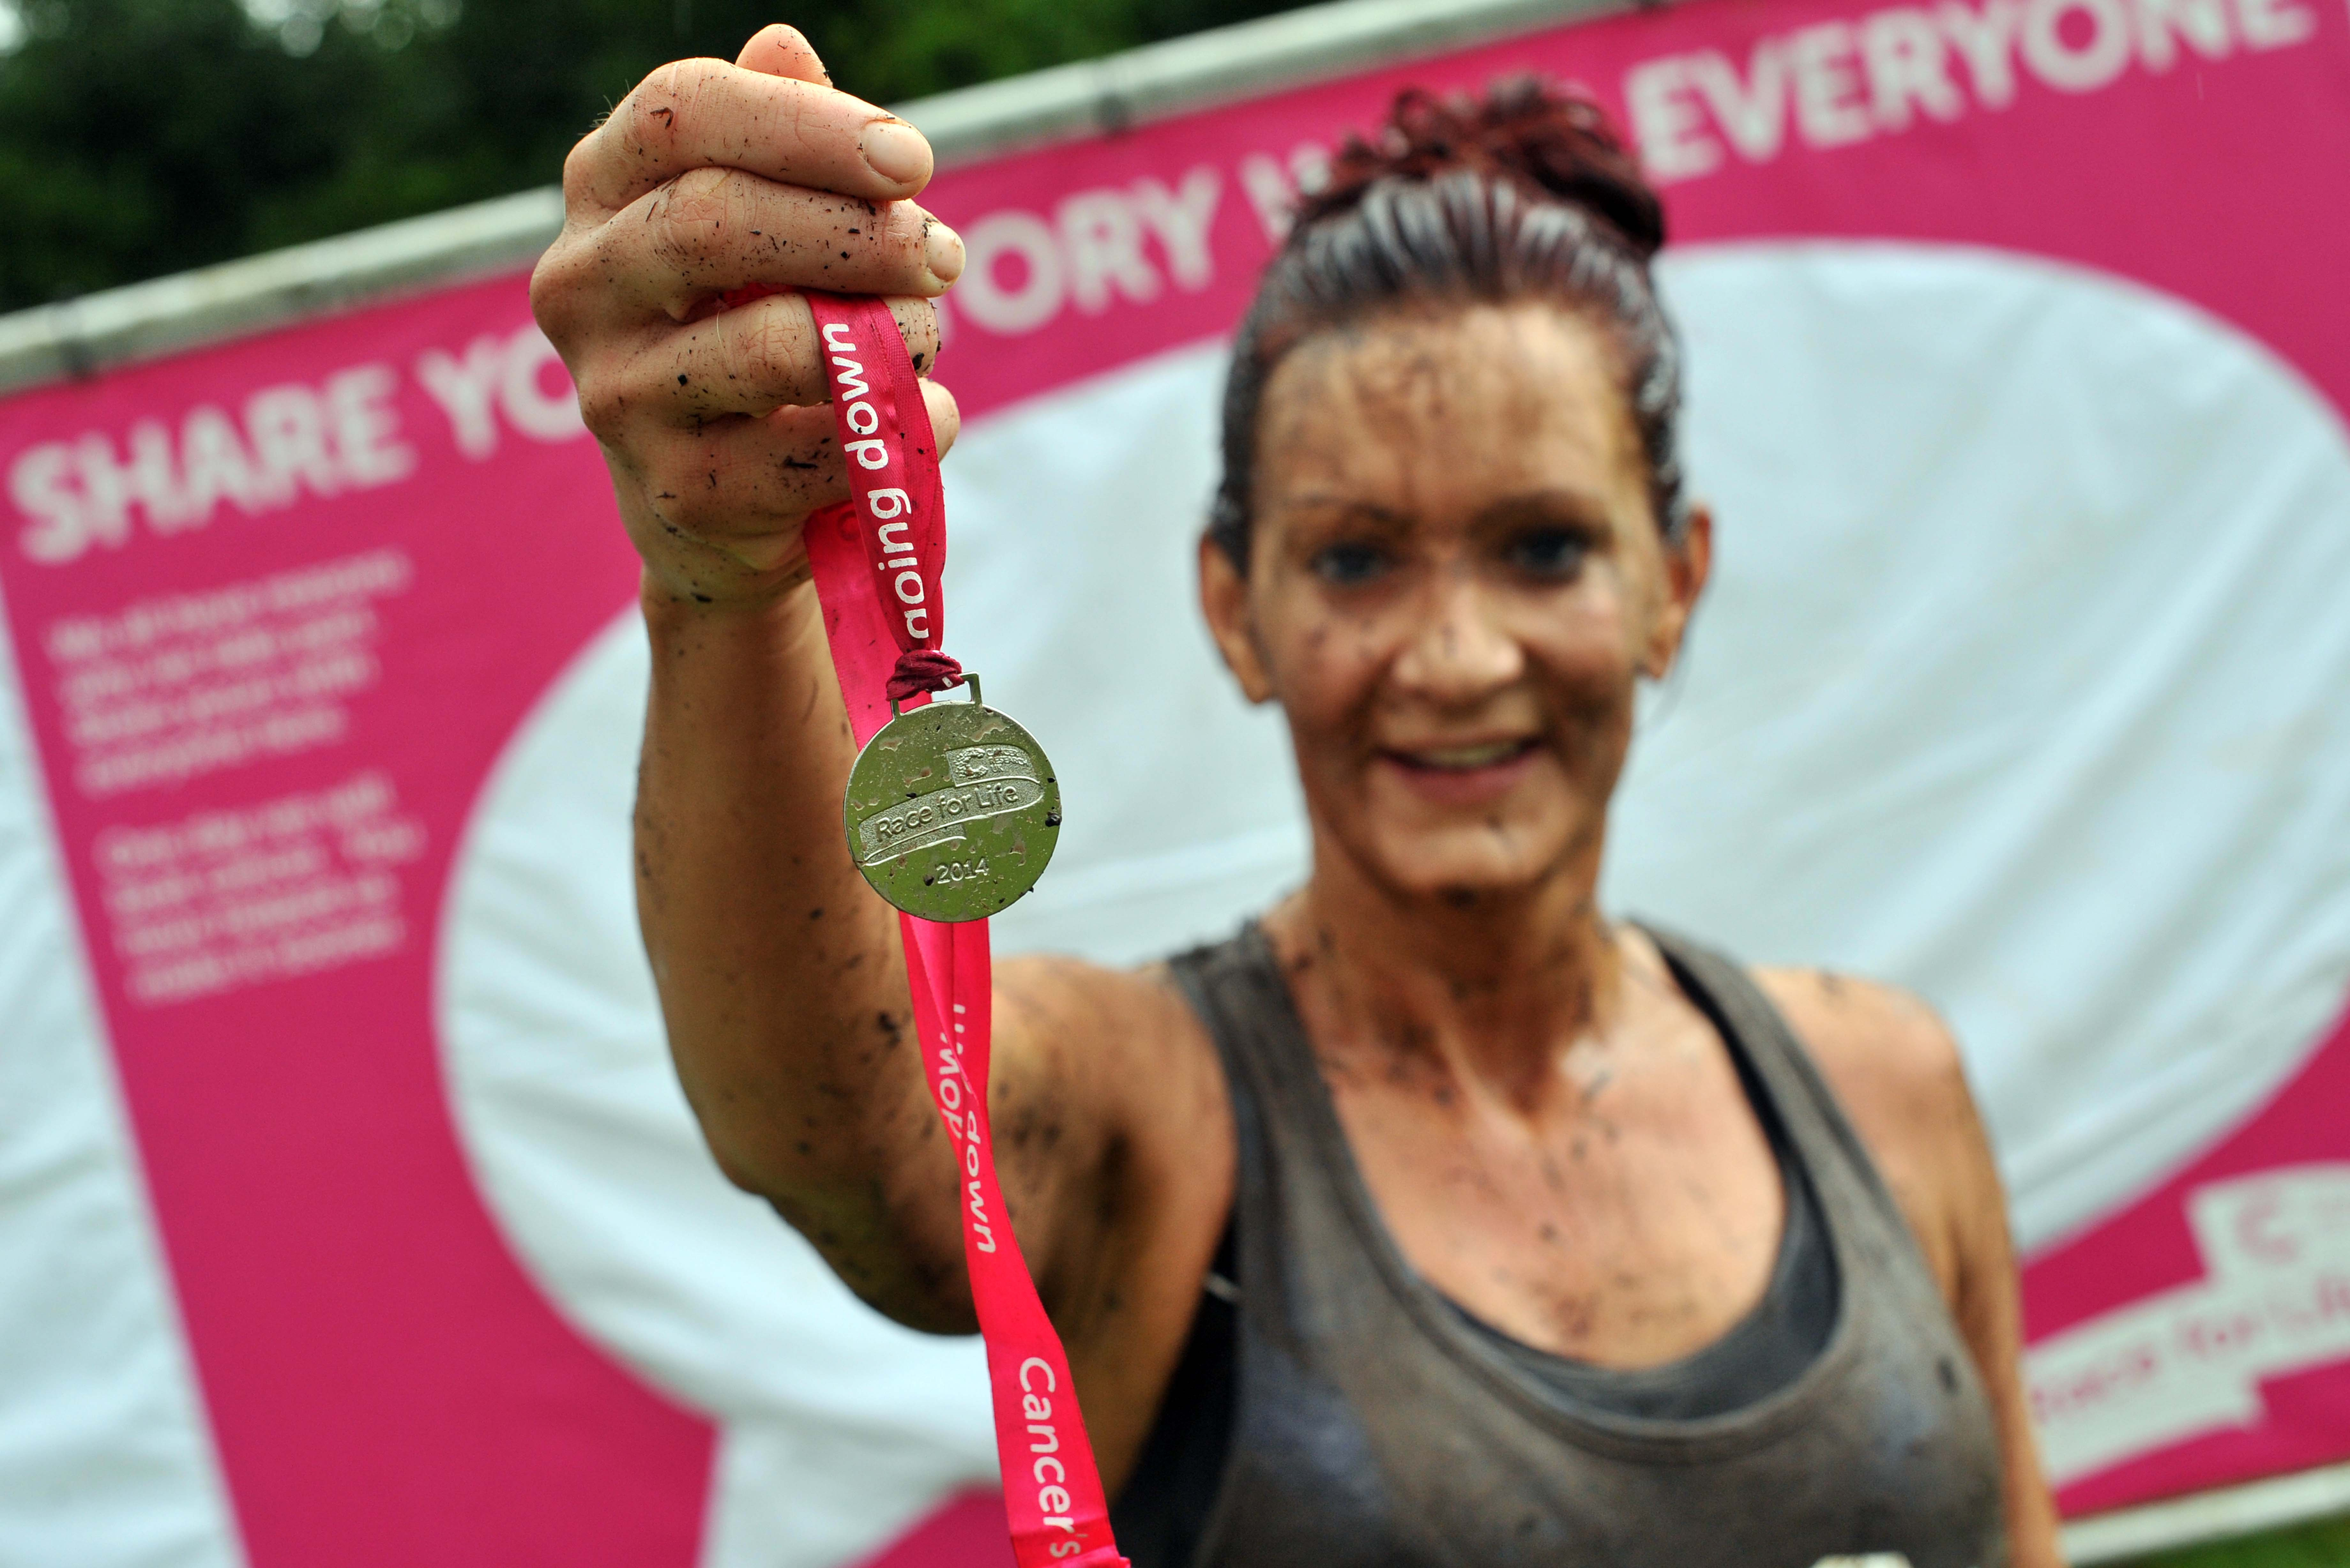 Race for Life: Not even a storm could dampen our spirits